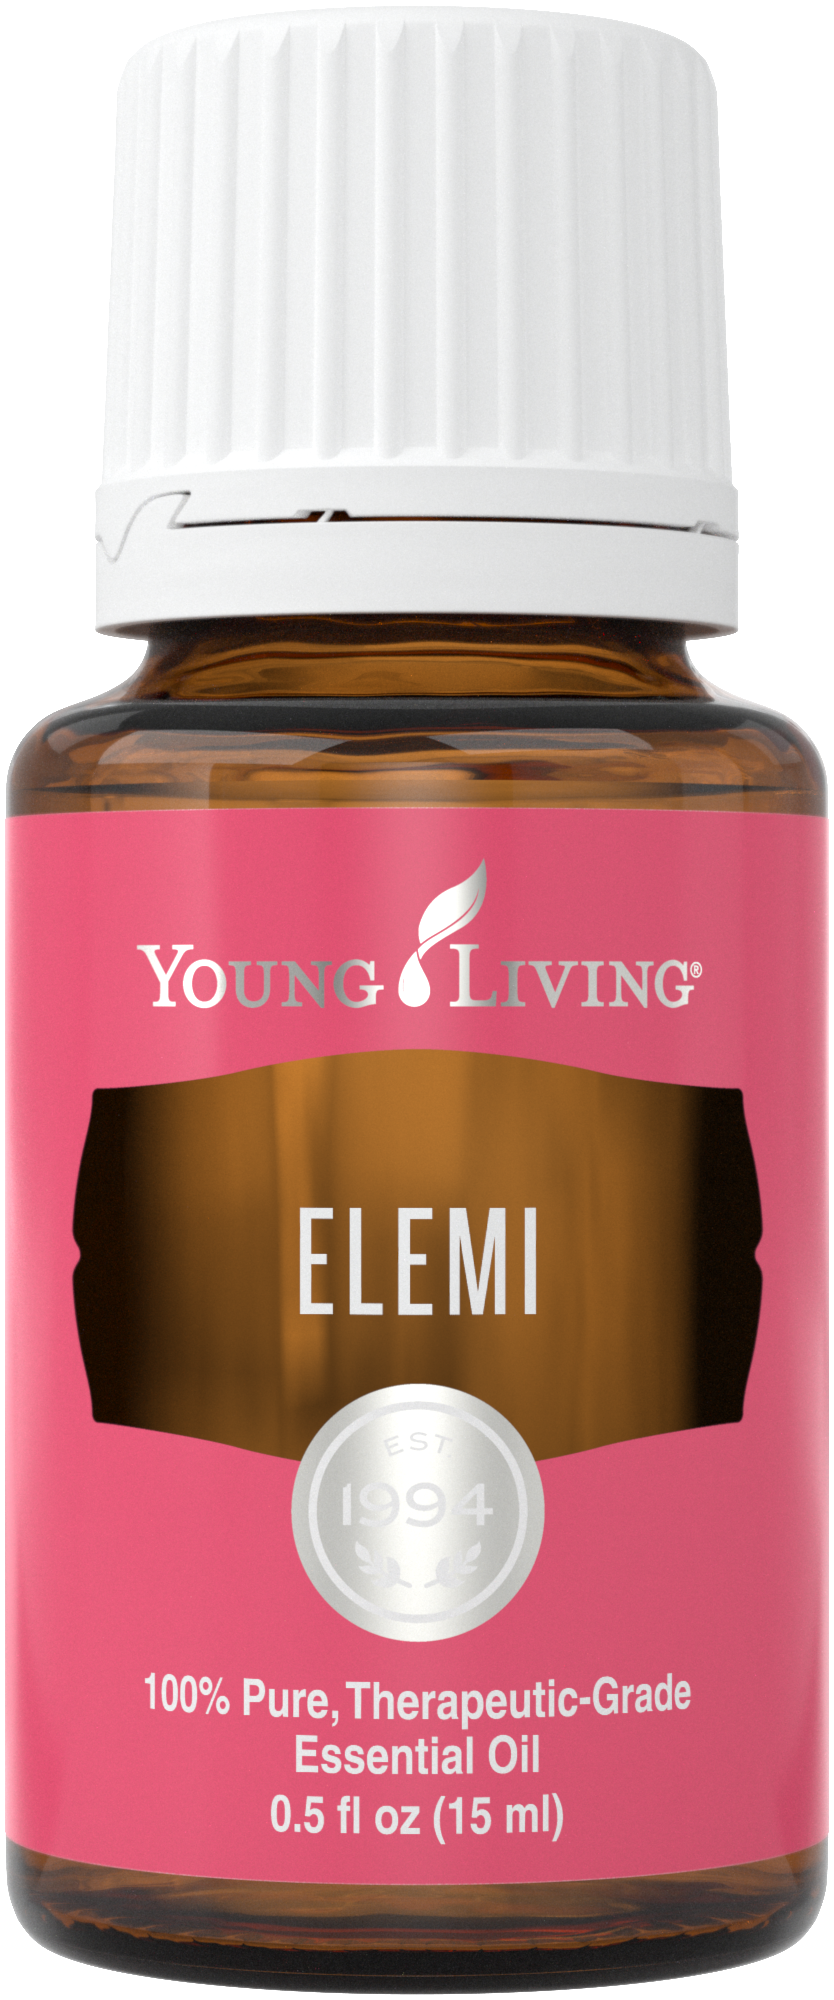 Elemi essential oil | Young Living